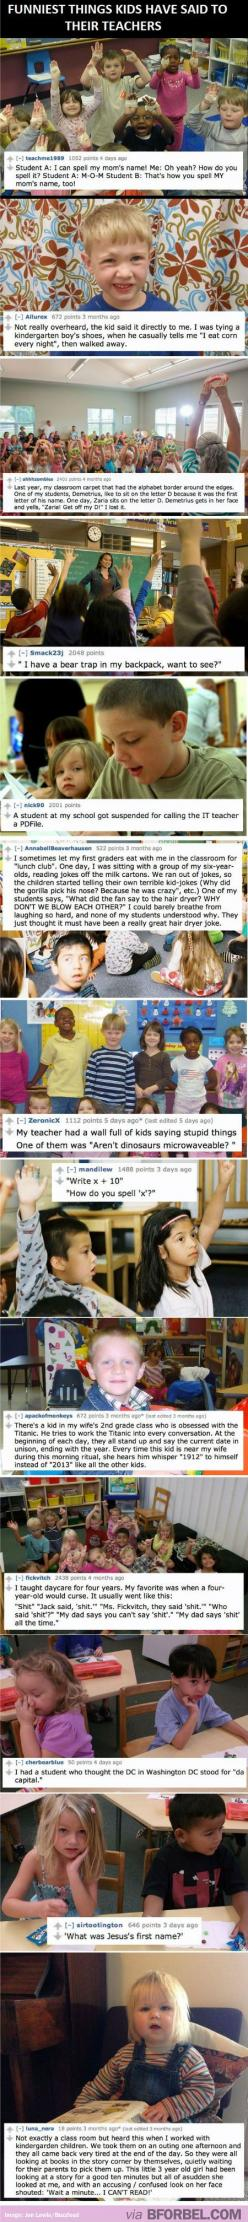 13 Hilarious Things Kids Said To Their Teachers…: Funny Teacher, Giggle, Funny Things, Funny Pictures, Funny Stuff, Things Kids, So Funny, Funny Kids